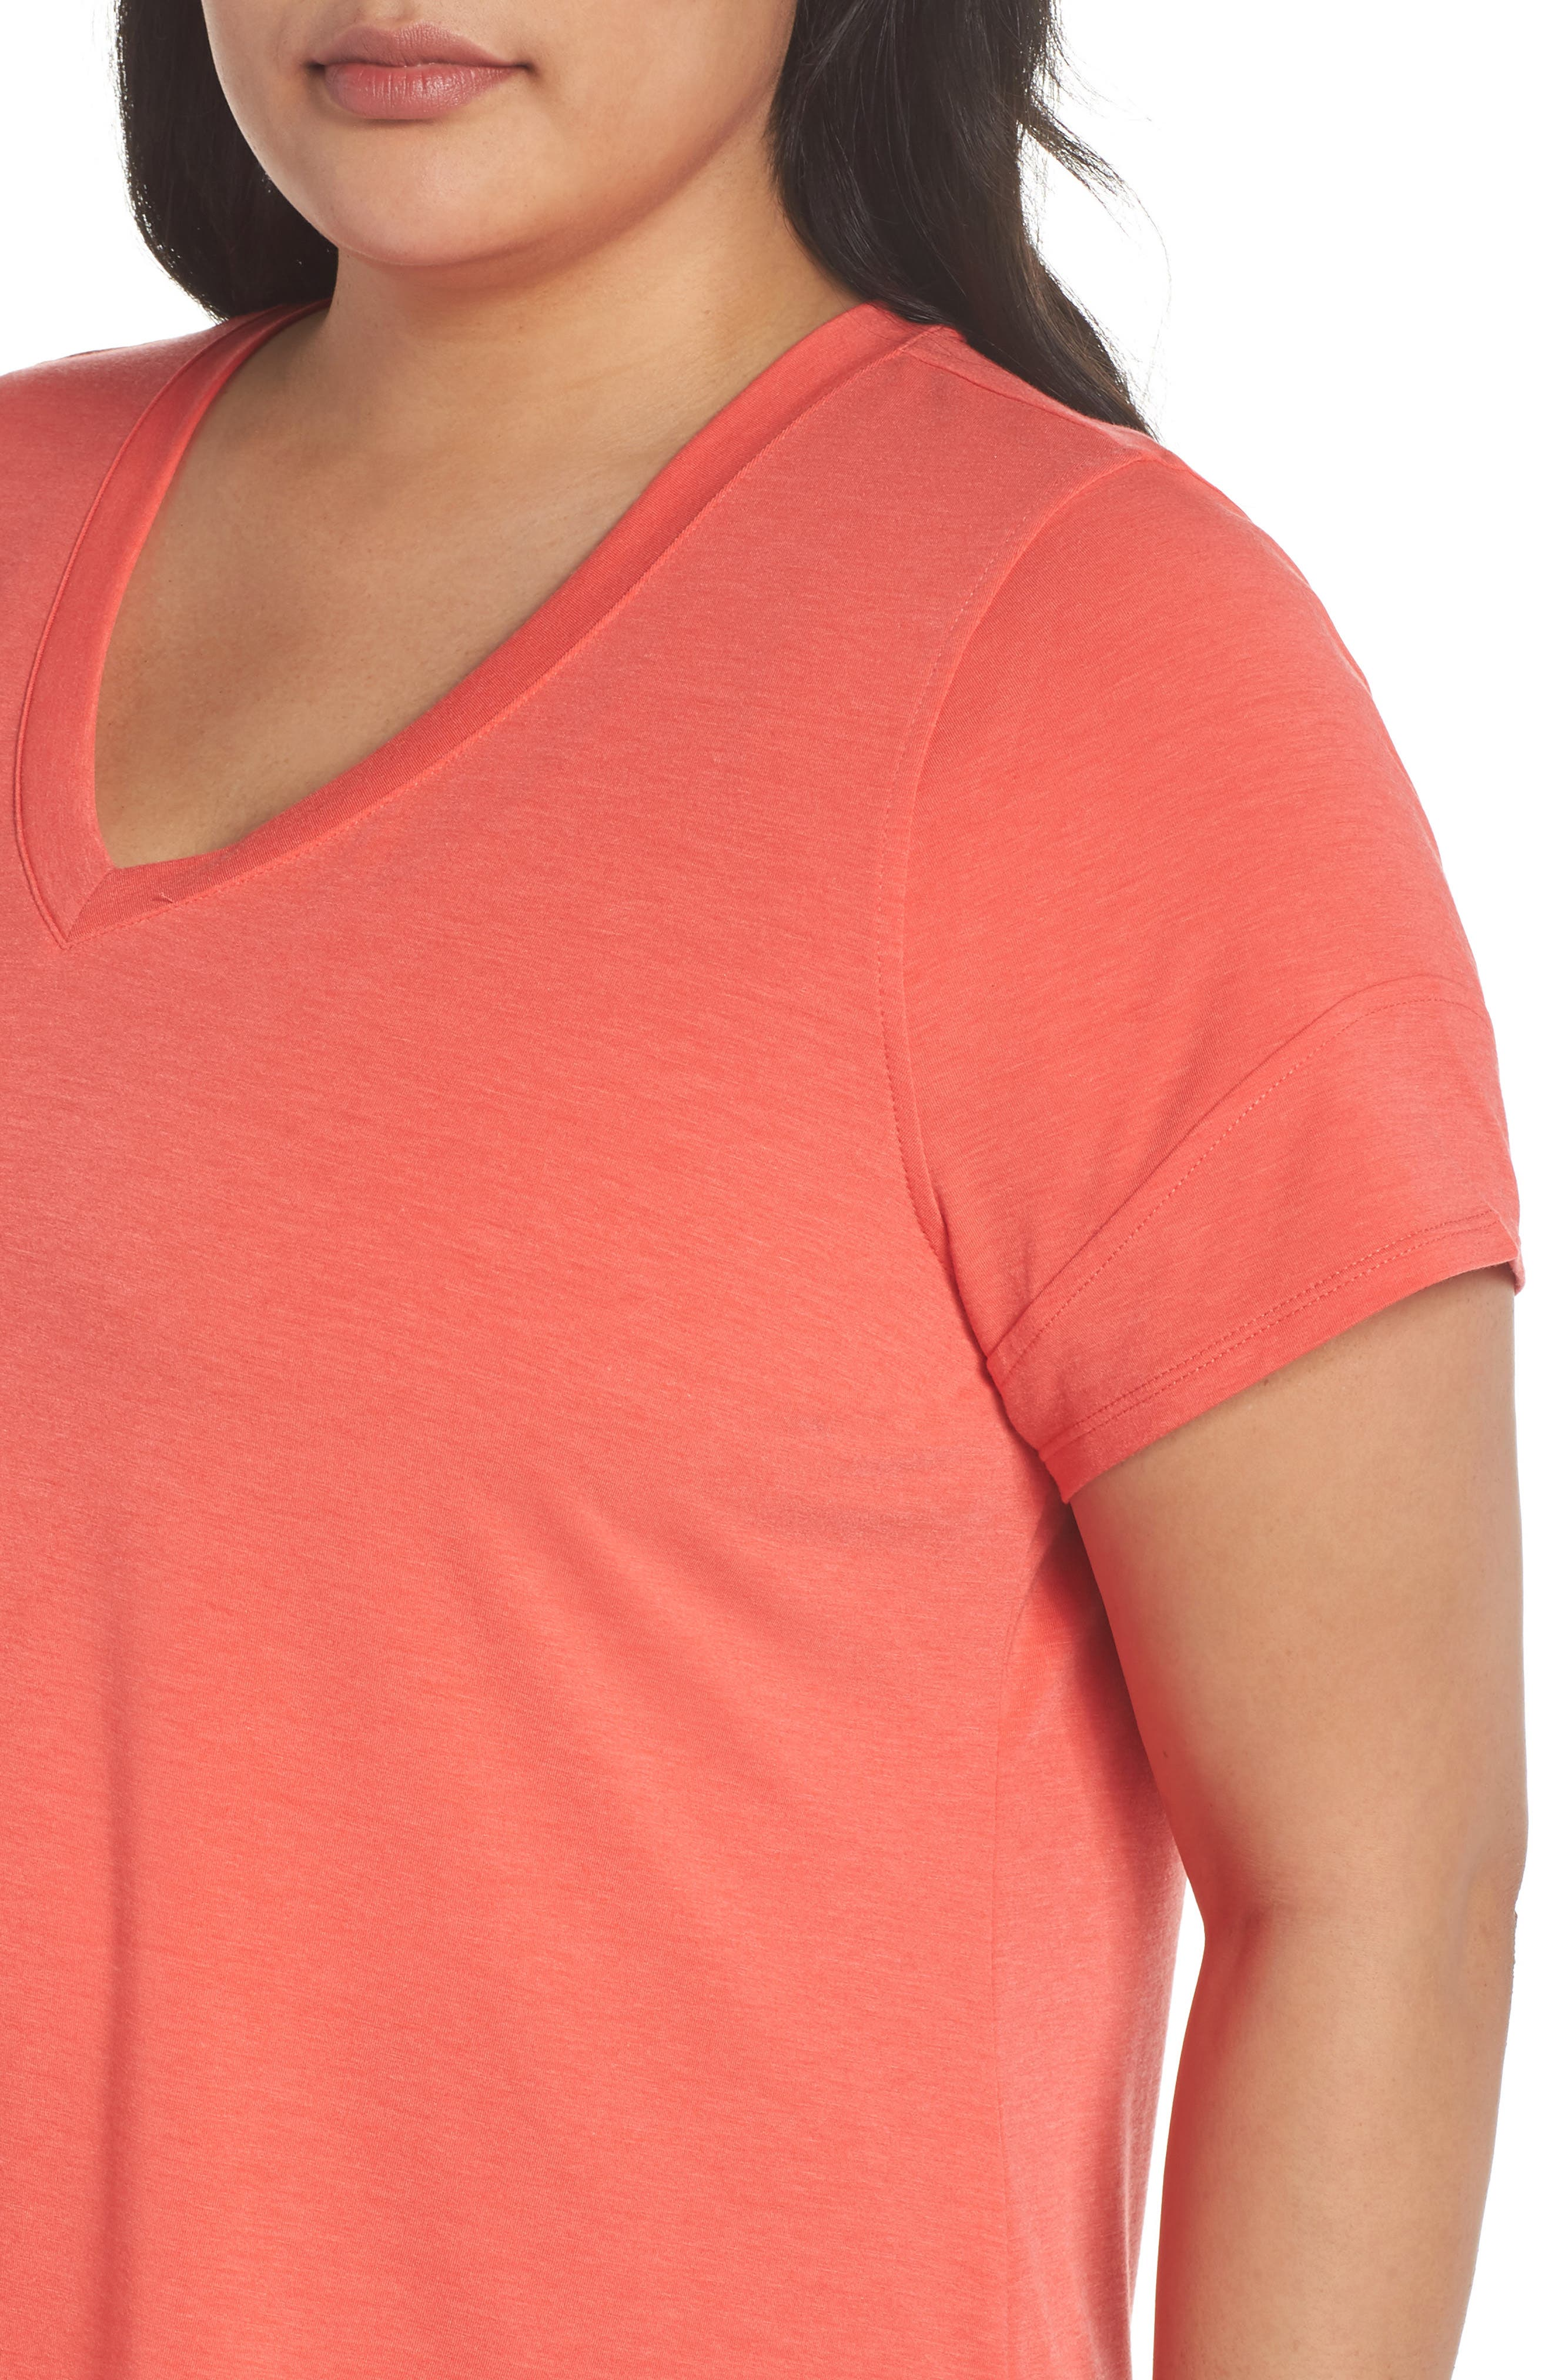 Ava Tee,                             Alternate thumbnail 4, color,                             Red Hibiscus Heather